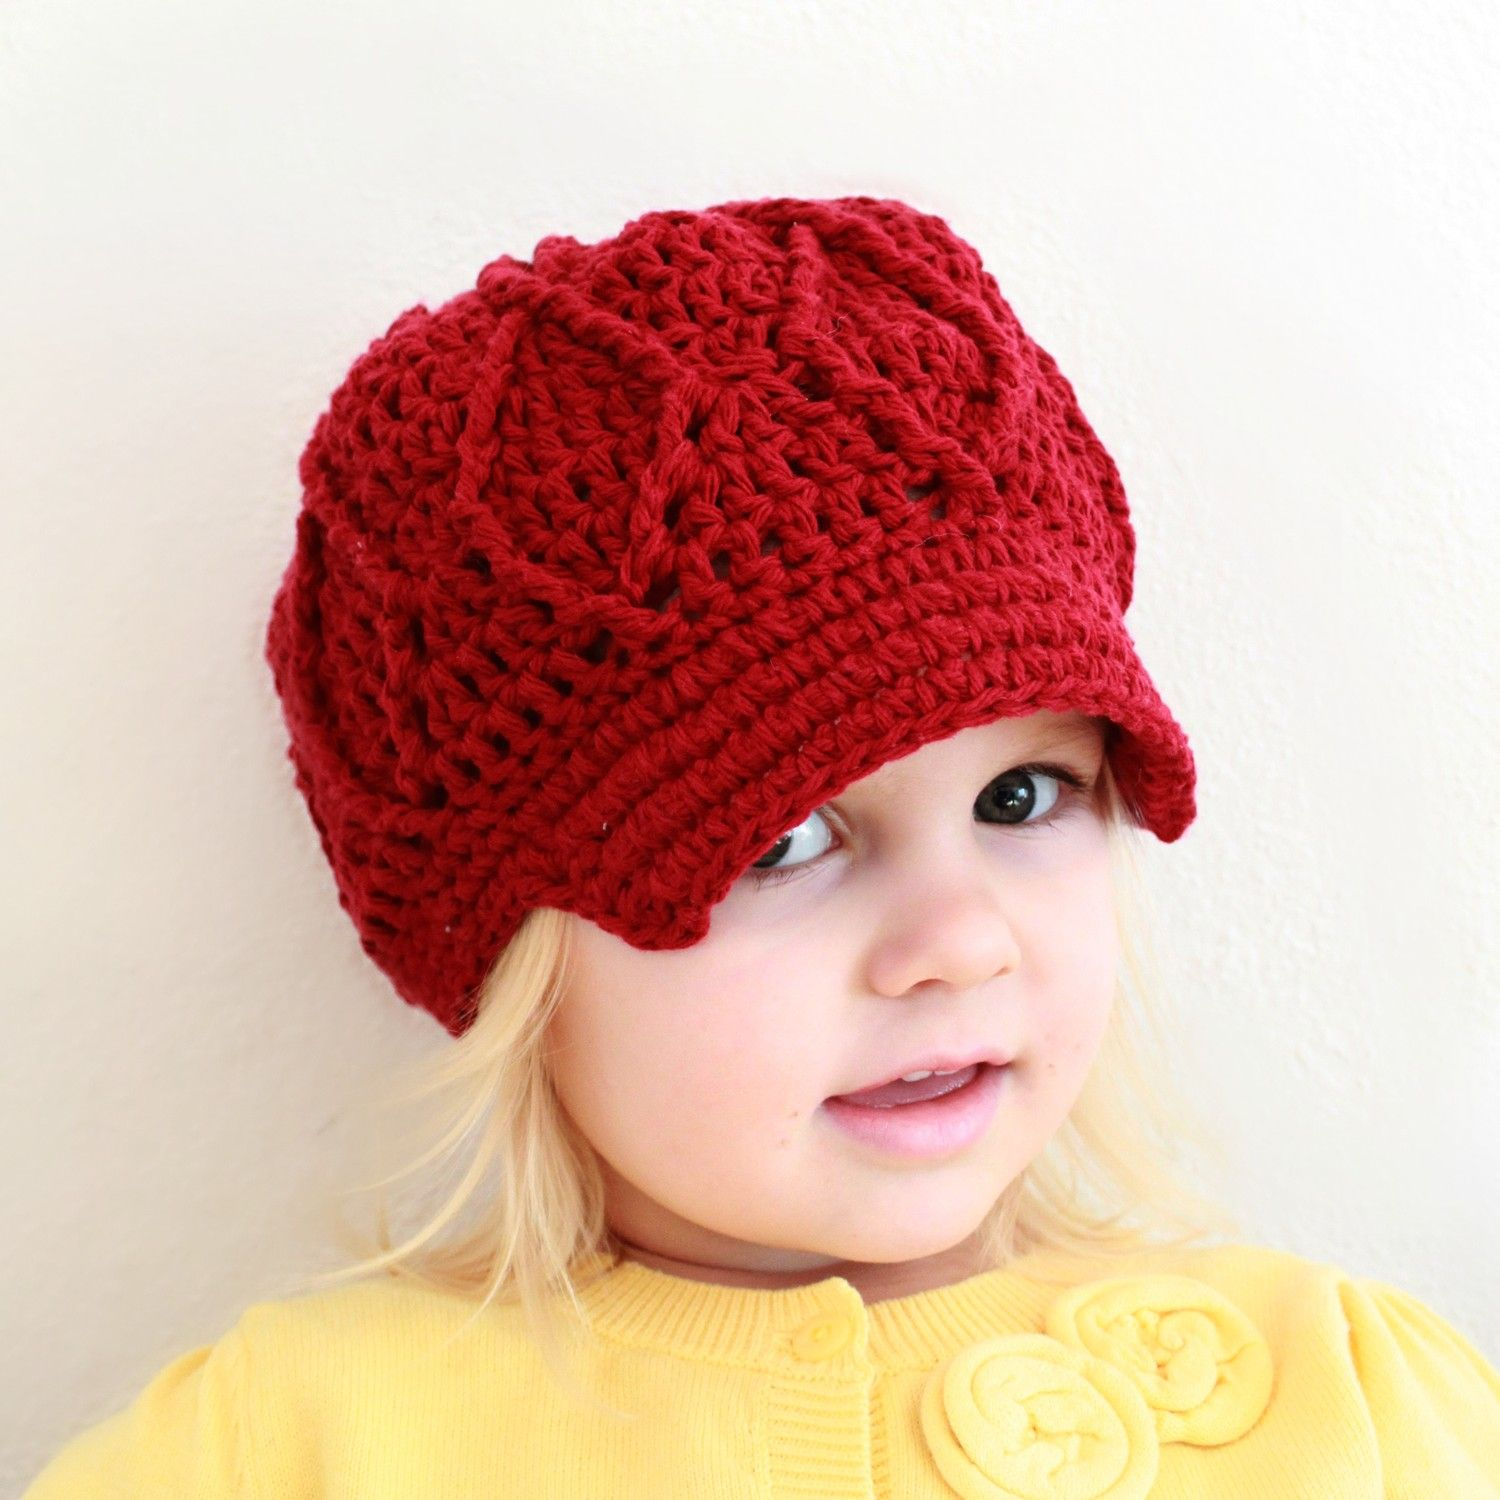 Crochet pattern maggie newsboy hat two sizes toddlerchild crochet pattern maggie newsboy hat two sizes toddlerchild and adult bankloansurffo Gallery